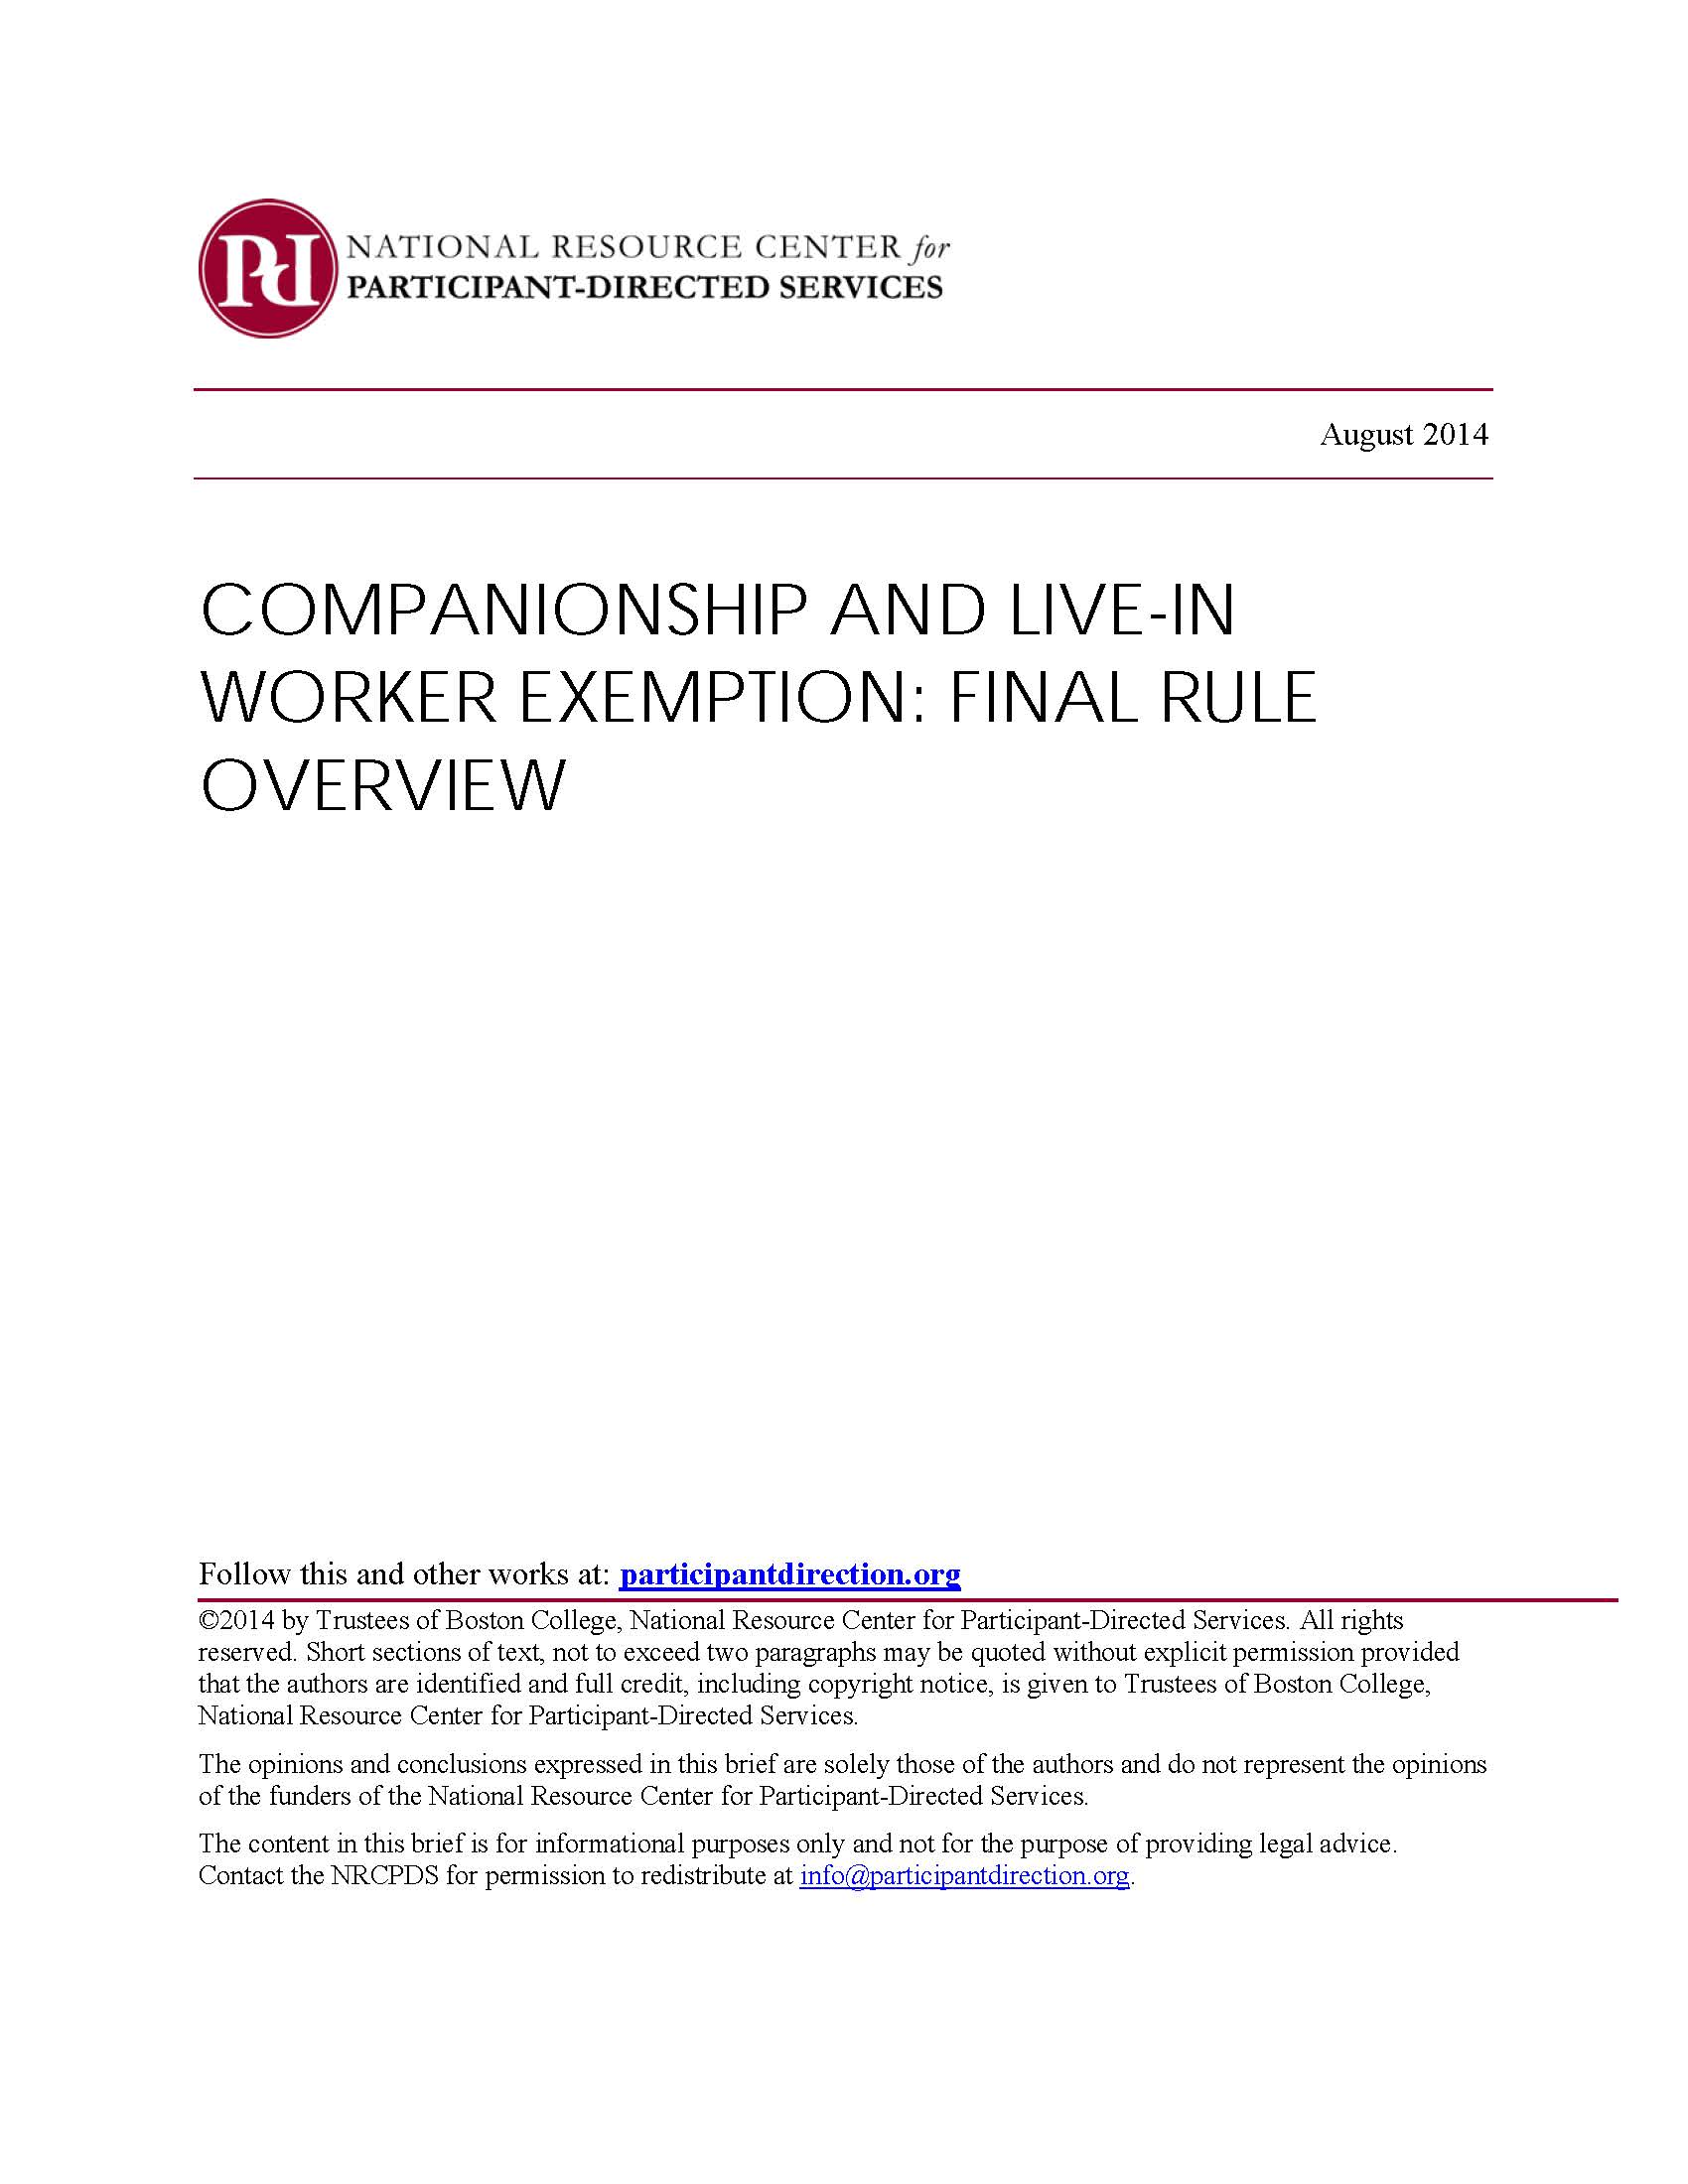 Companionship and Live-In Worker Exemptions